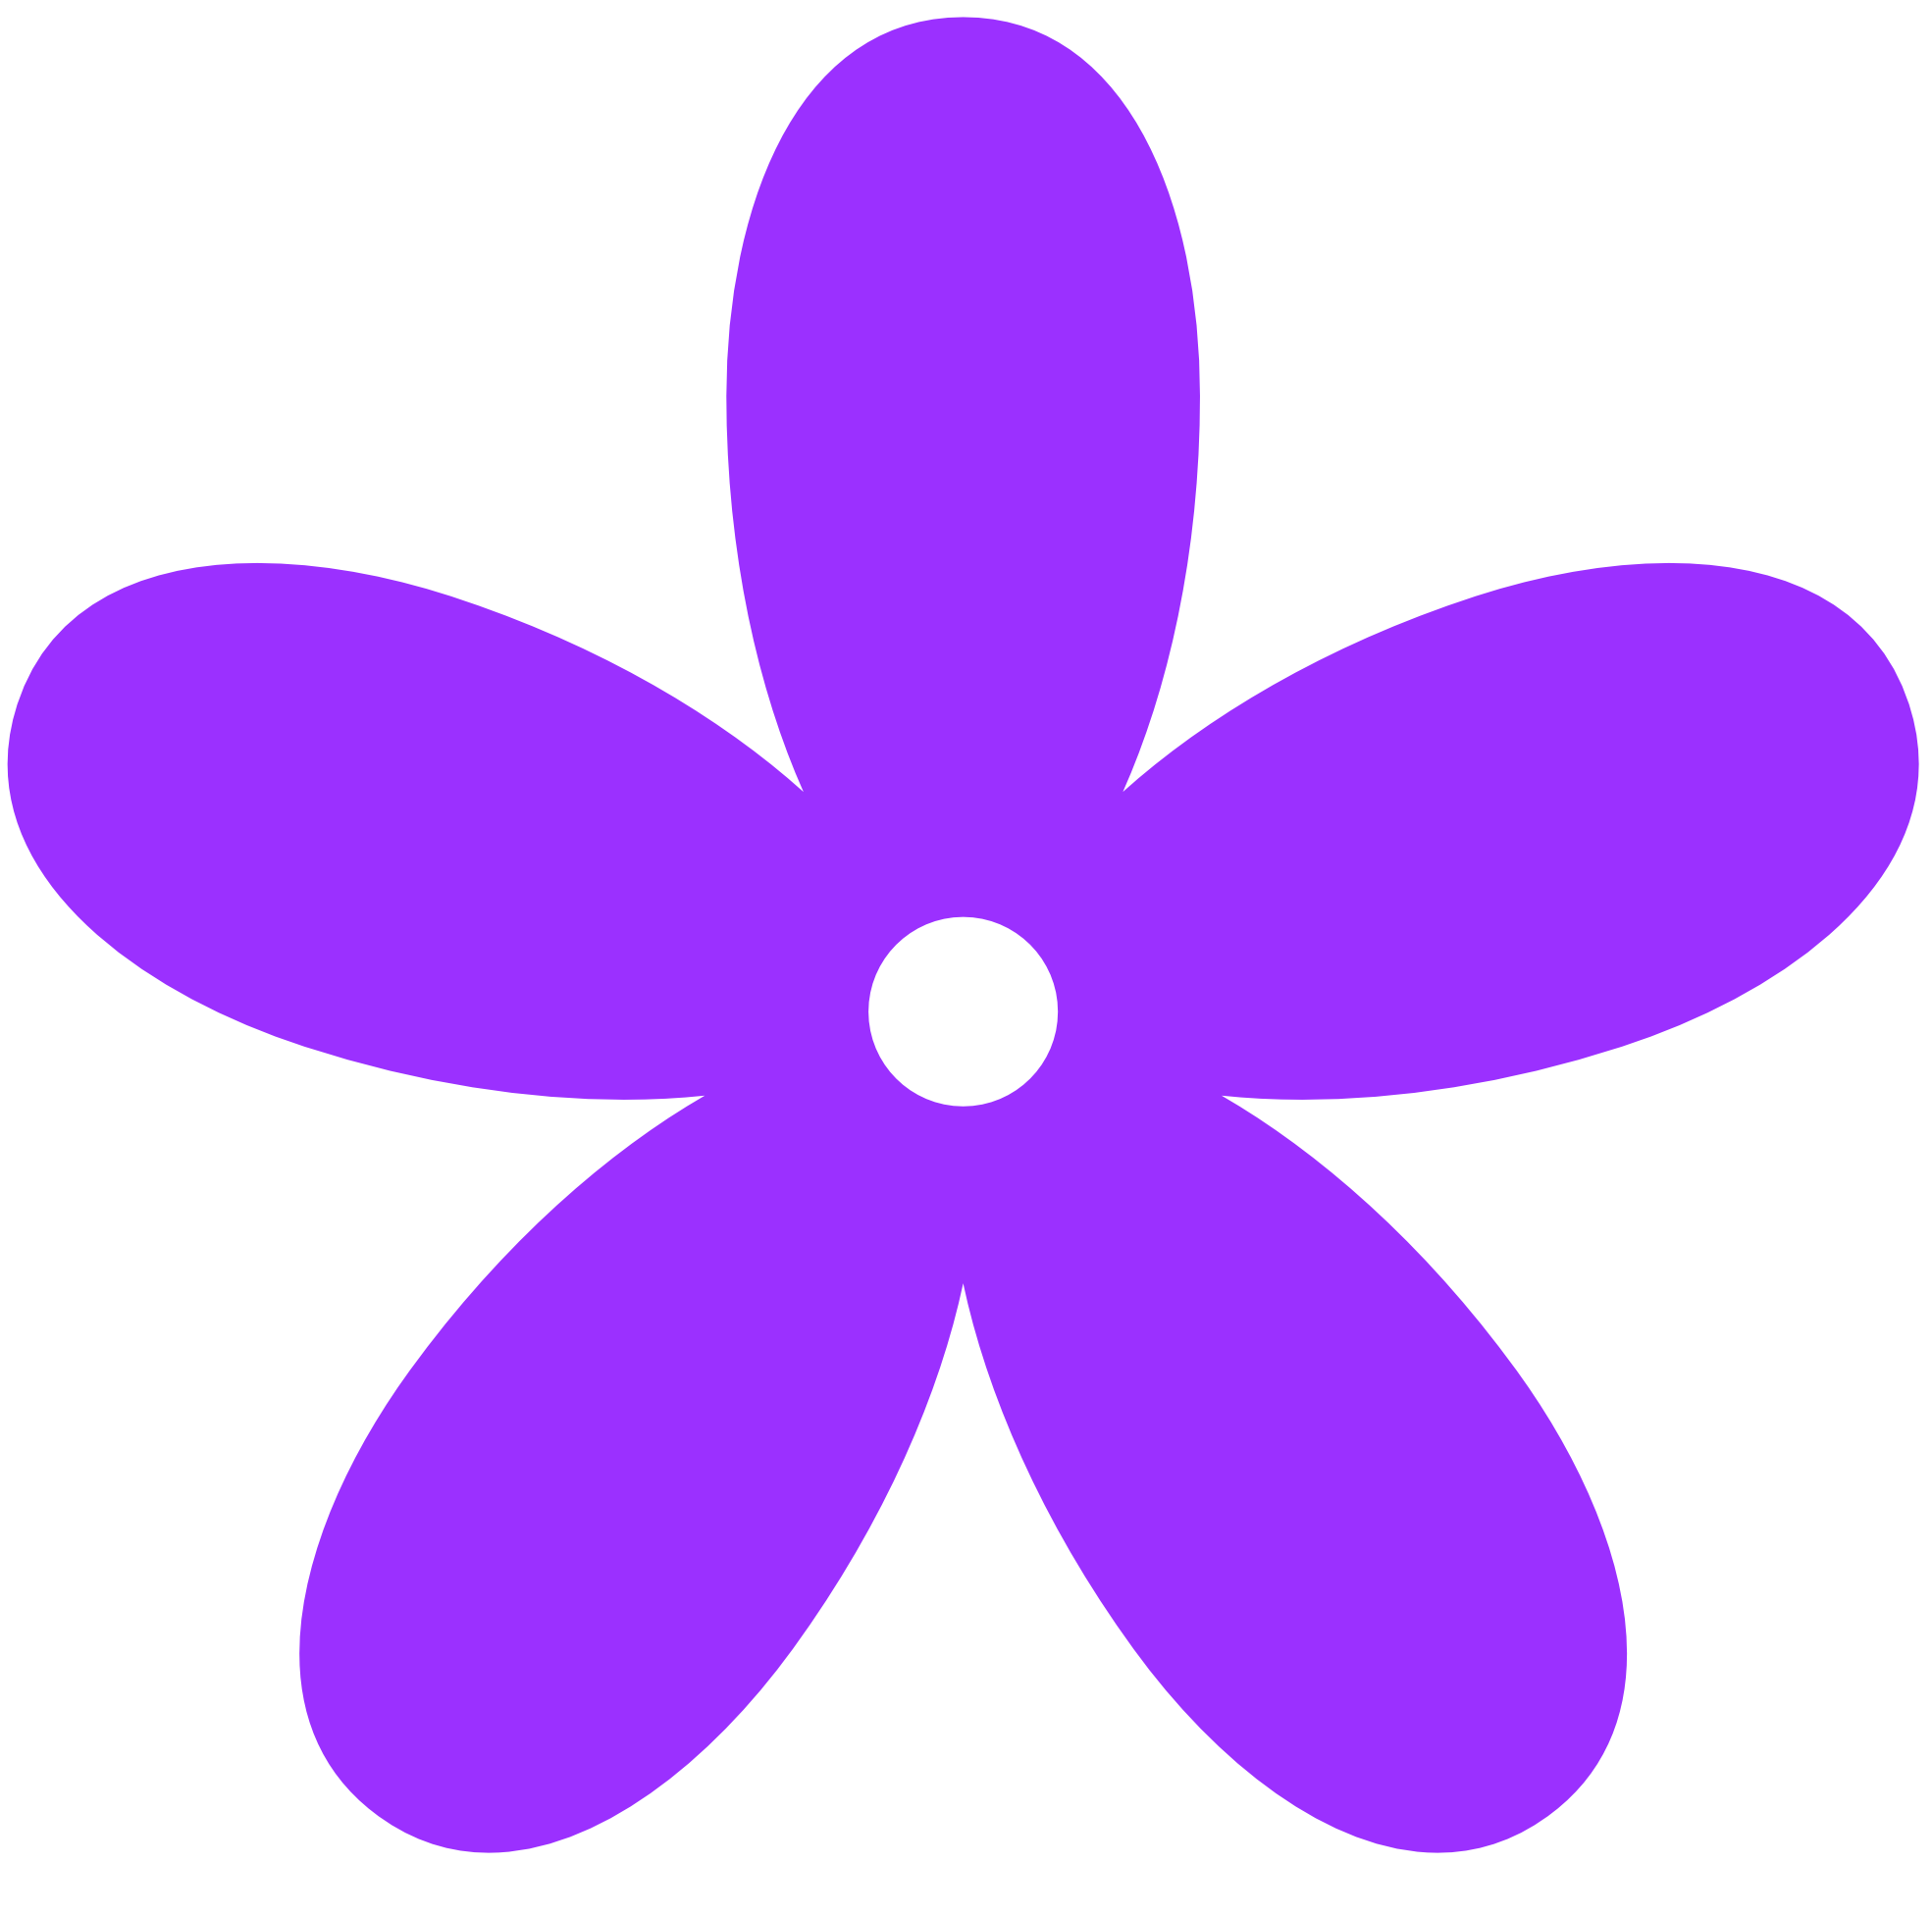 Purpleflowers clipart png library download Free Violet Flower Cliparts, Download Free Clip Art, Free ... png library download